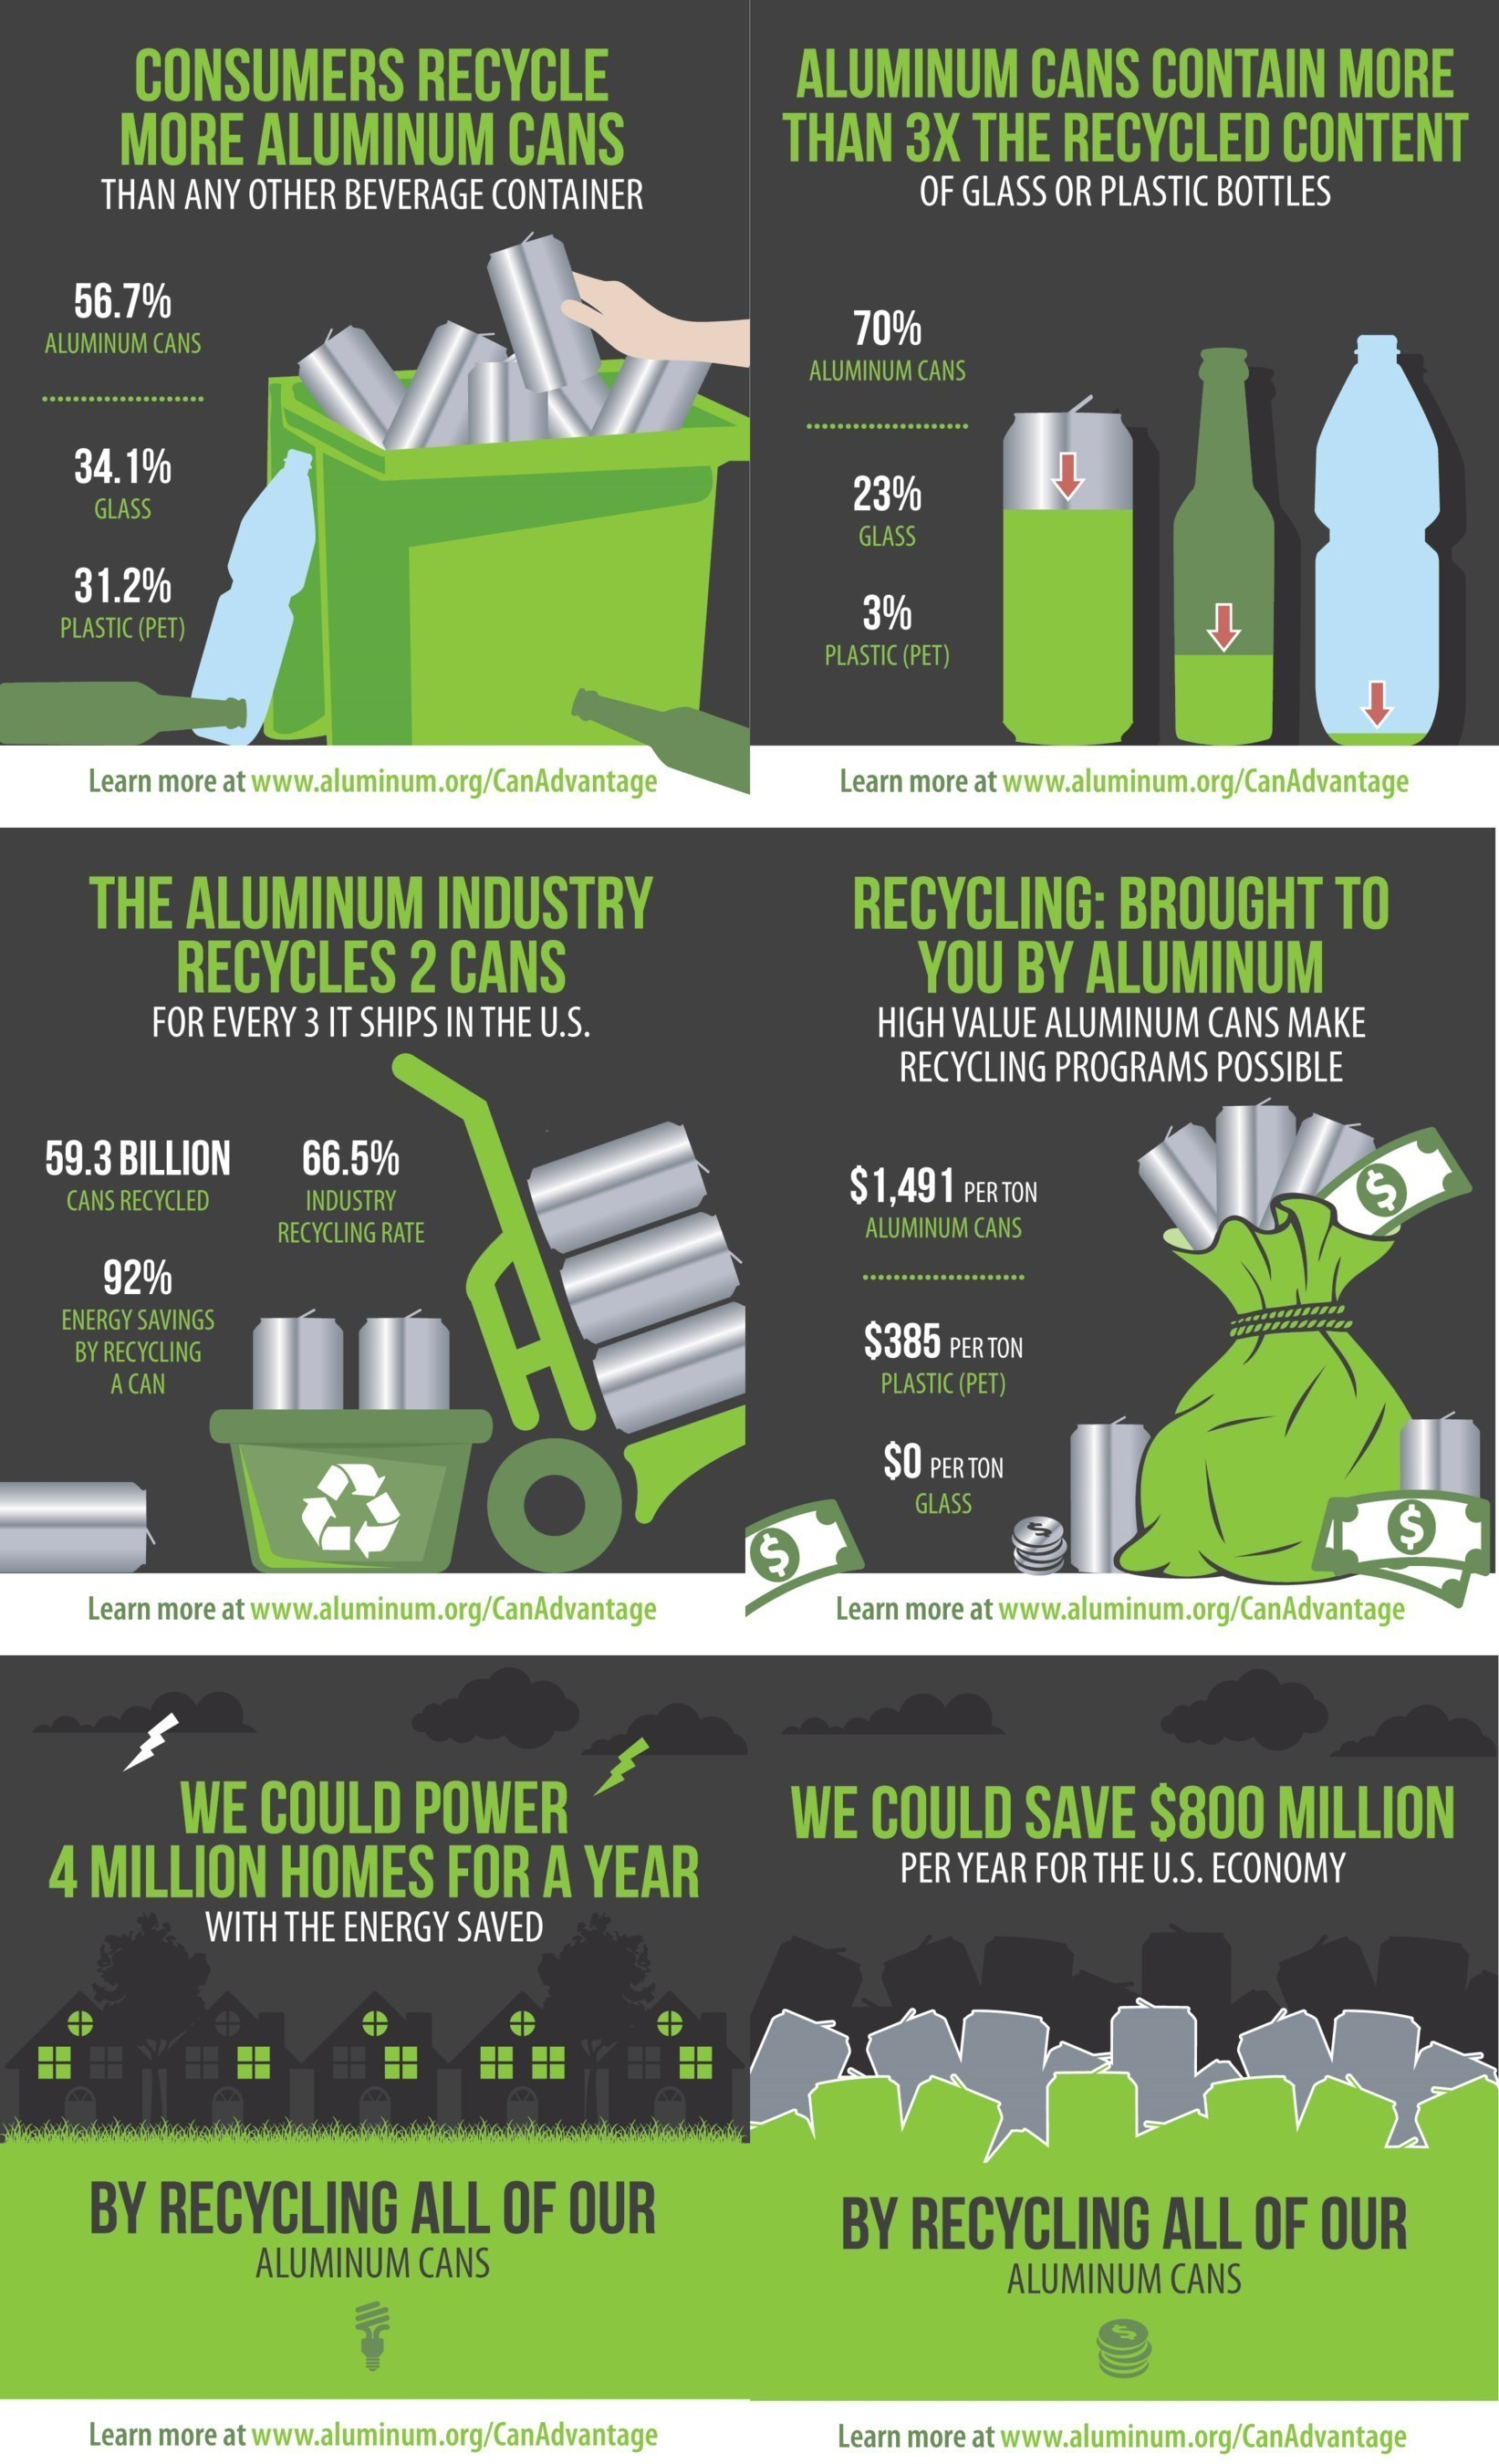 Aluminum cans are the most recycled and highest value beverage container on the market today, according to a ...